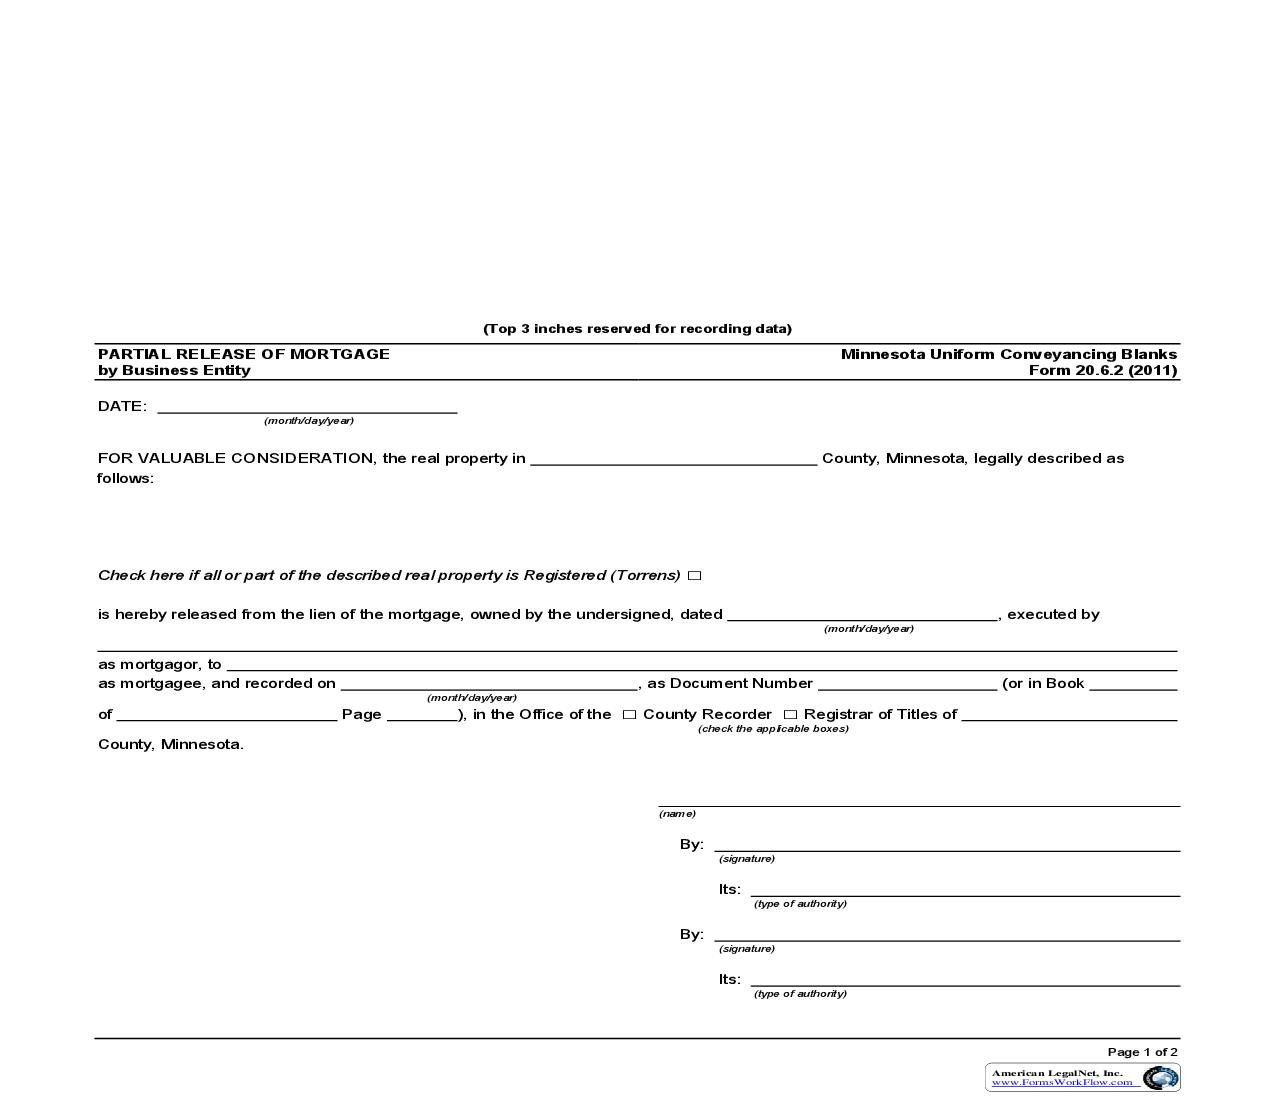 Partial Release Of Mortgage By Business Entity {20.6.2}   Pdf Fpdf Doc Docx   Minnesota